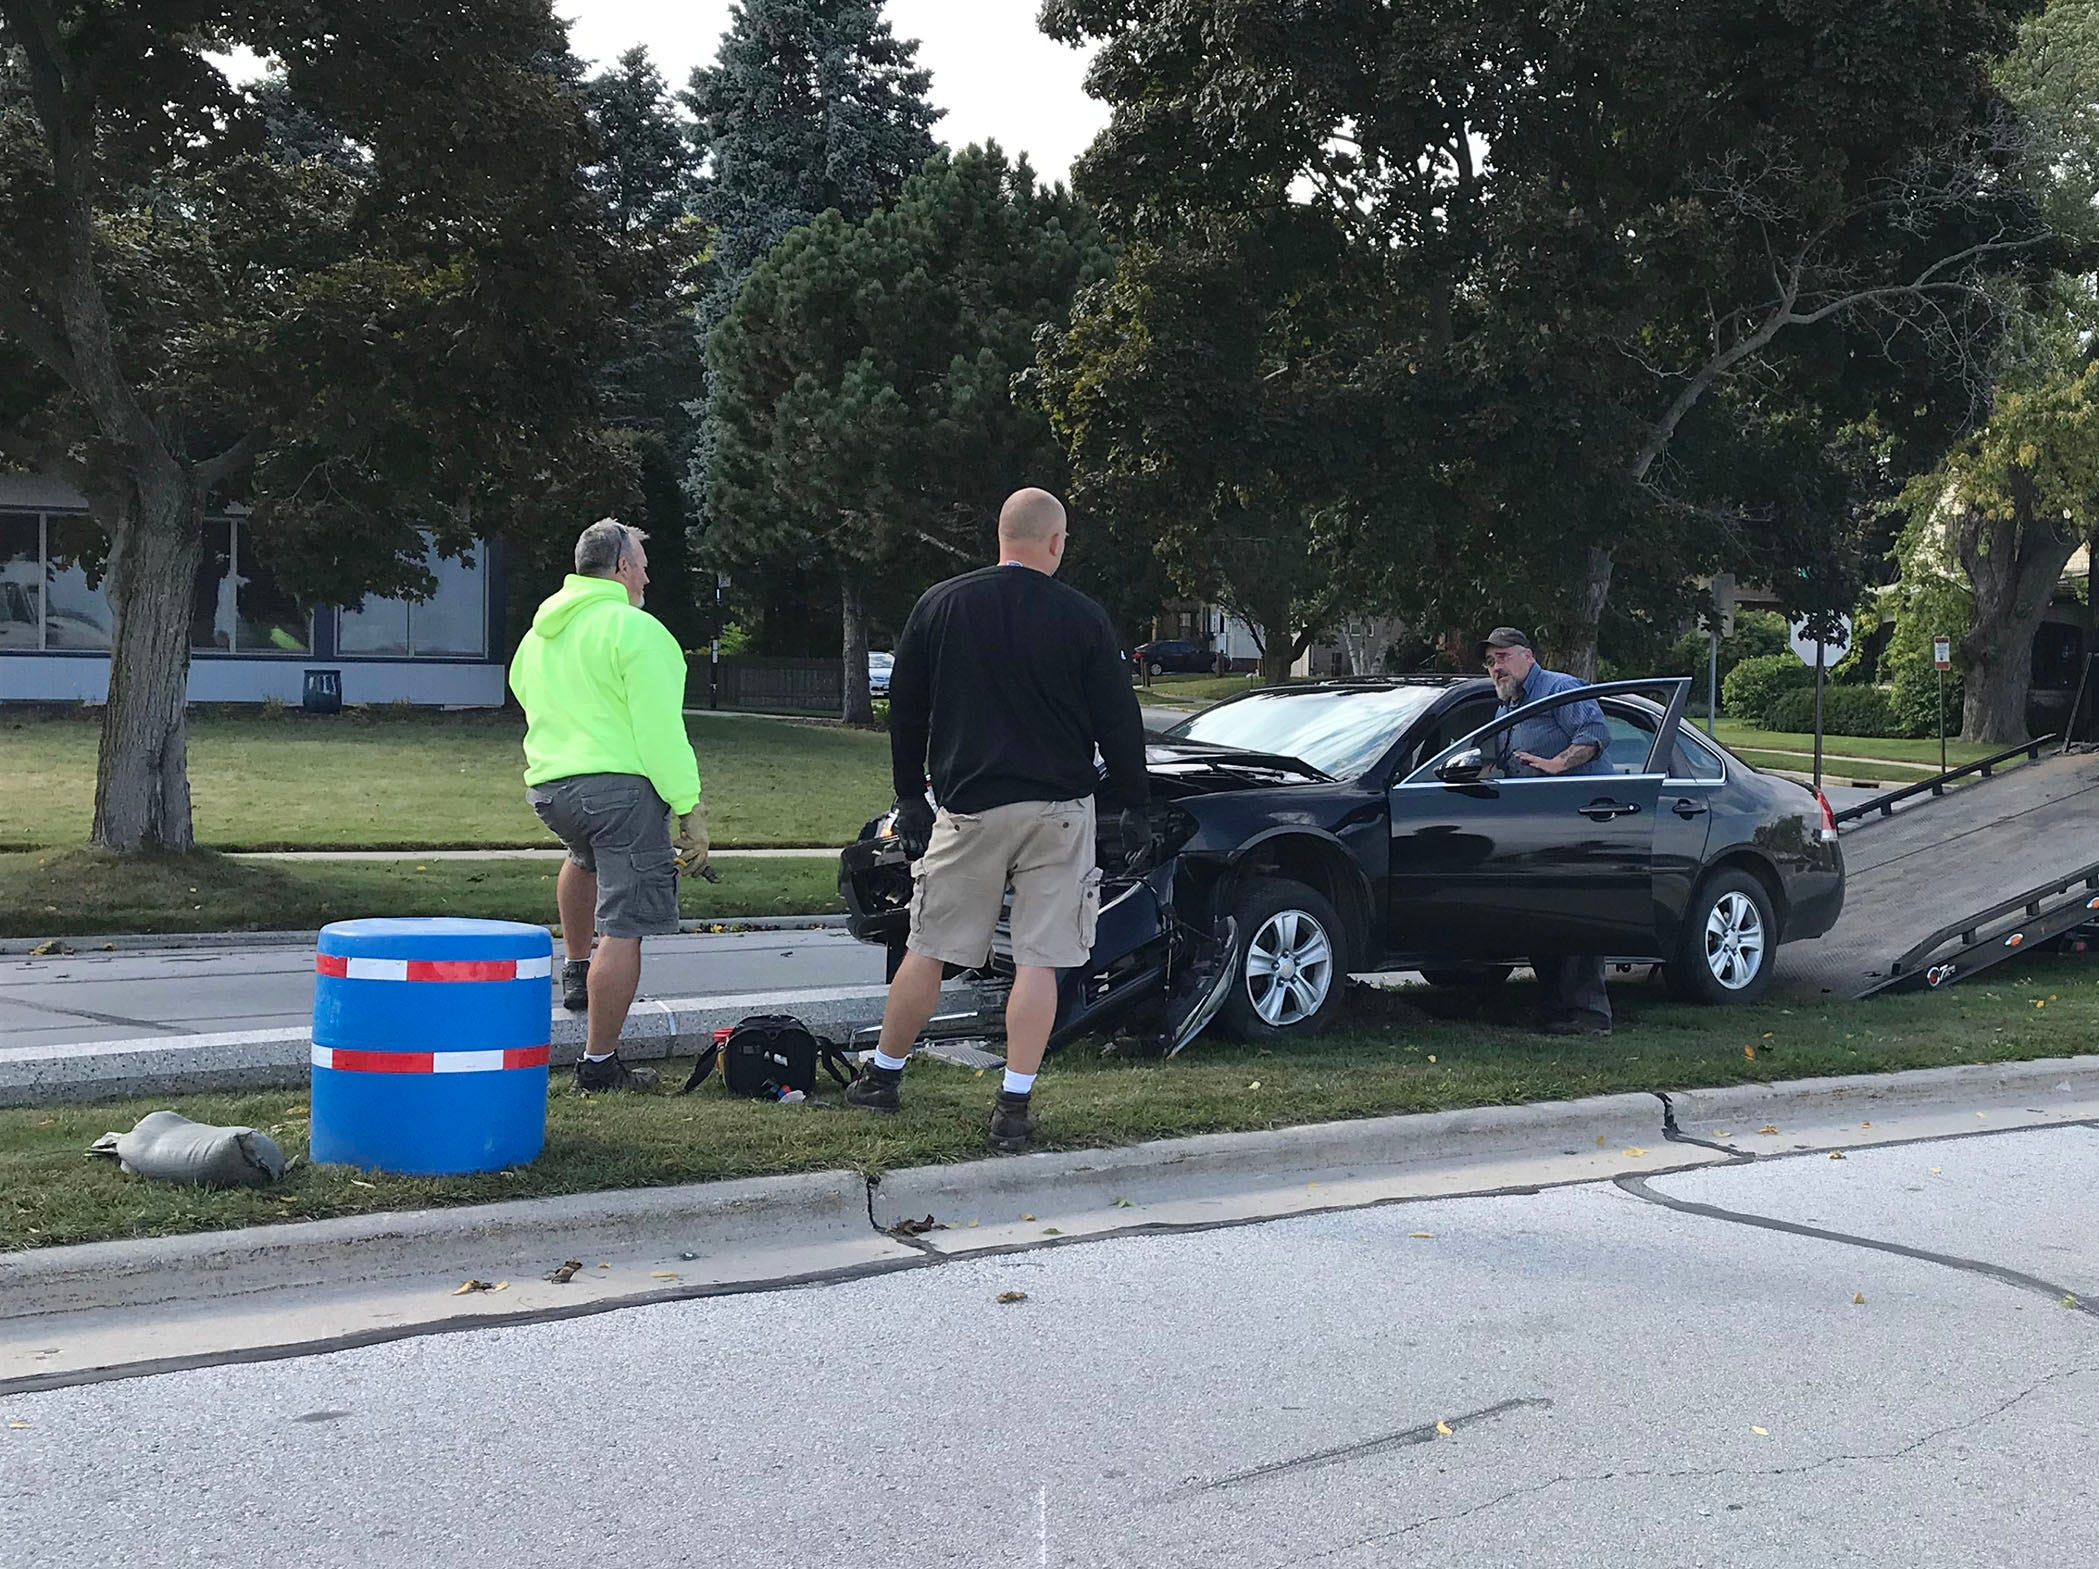 City of Sheboygan Public Works employees wait for Riteway Towing to remove a vehicle that struck a lamp pole, Thursday, September 27, 2018, in Sheboygan, Wis. The